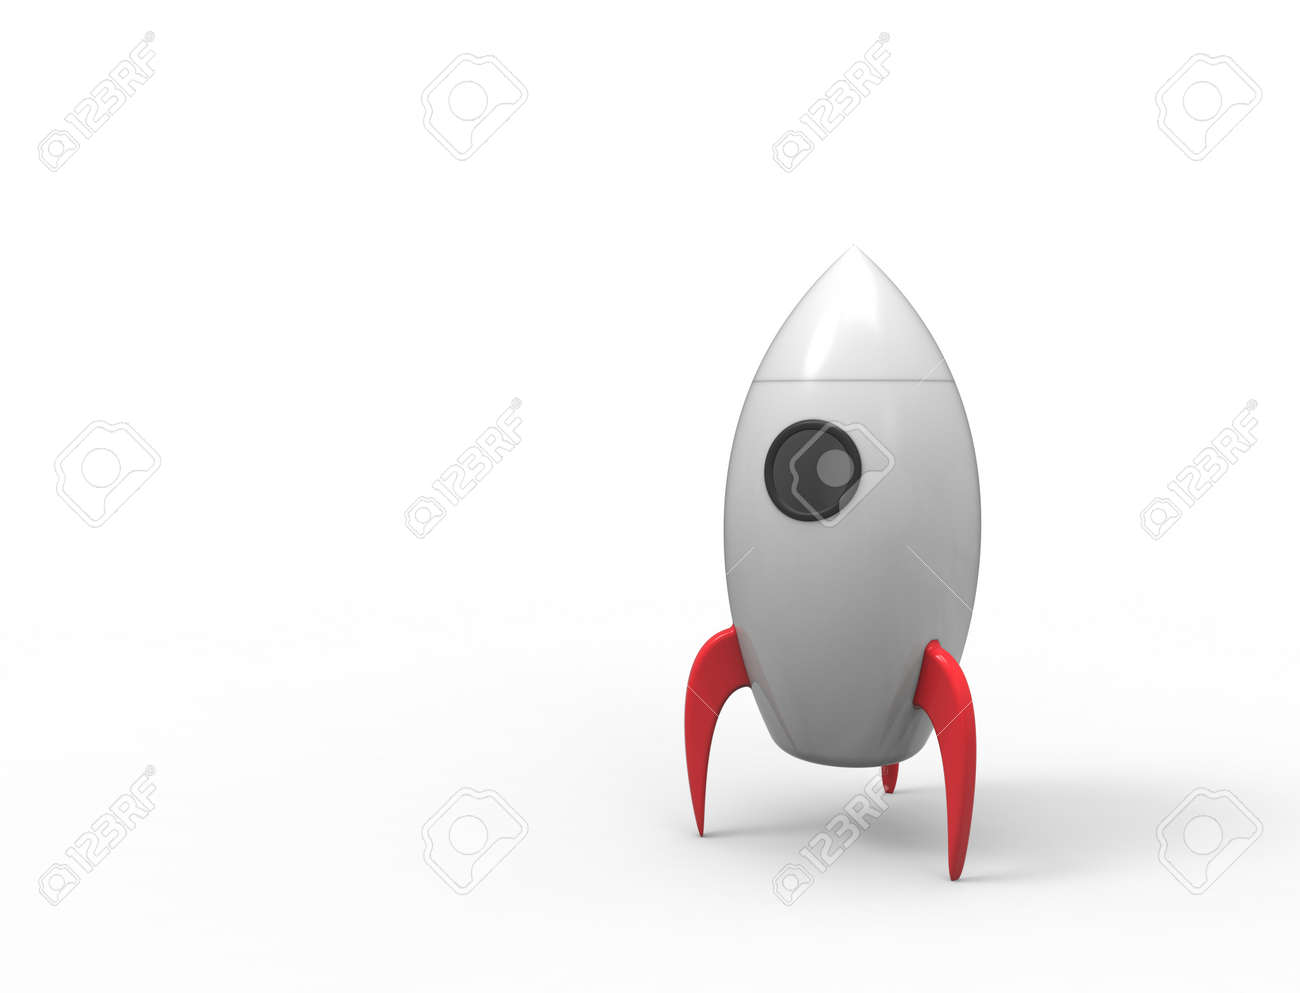 3D rendering of cartoon toy rocket ioslated on white background - 123292189